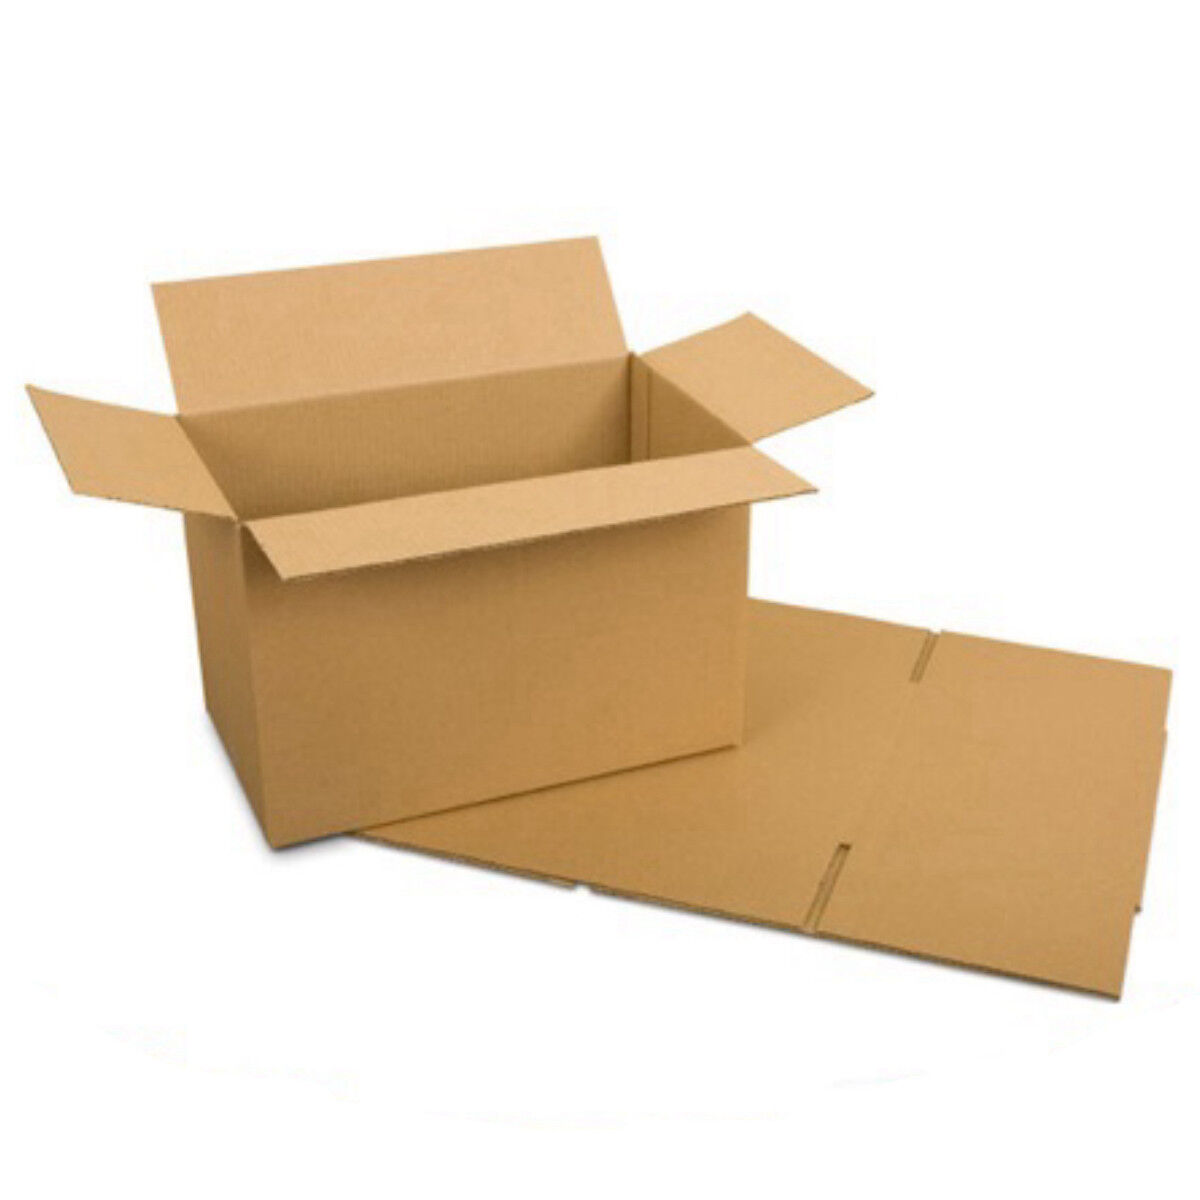 Cardboard Postage Boxes Single Wall Postal Mailing Small Parcel Box 8  x 6  x 4